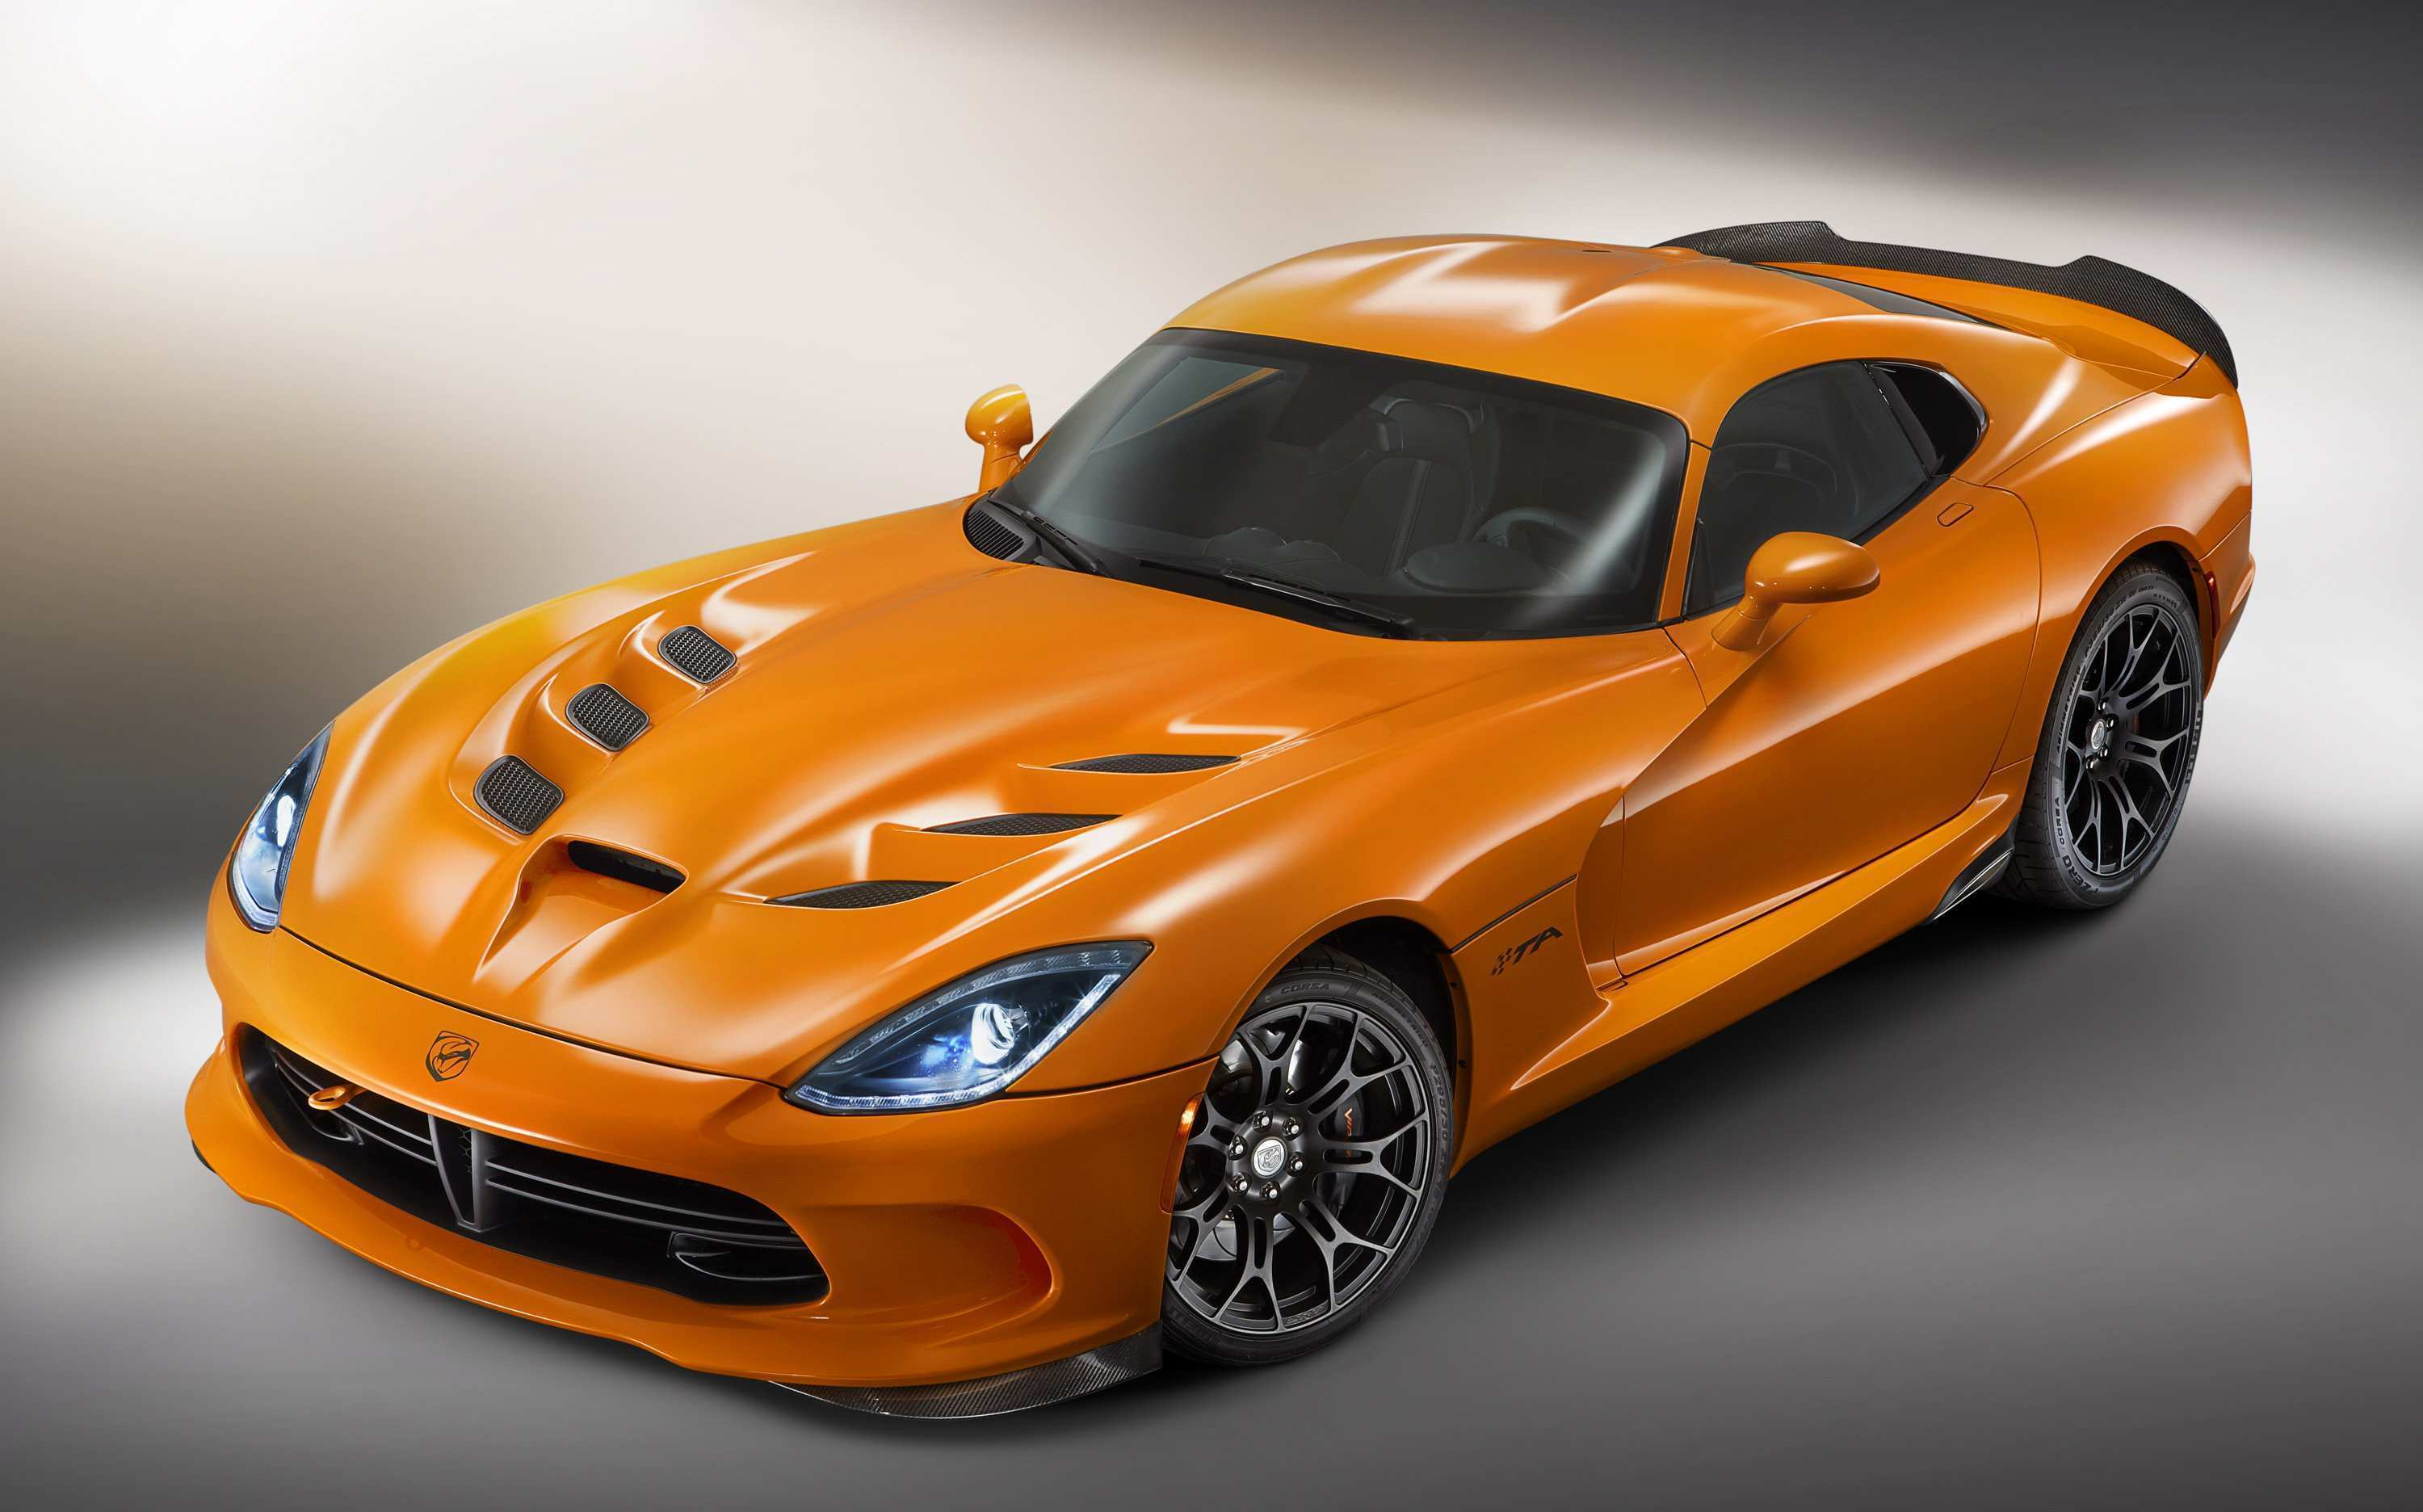 47 Gallery of 2020 Dodge Viper ACR Redesign for 2020 Dodge Viper ACR